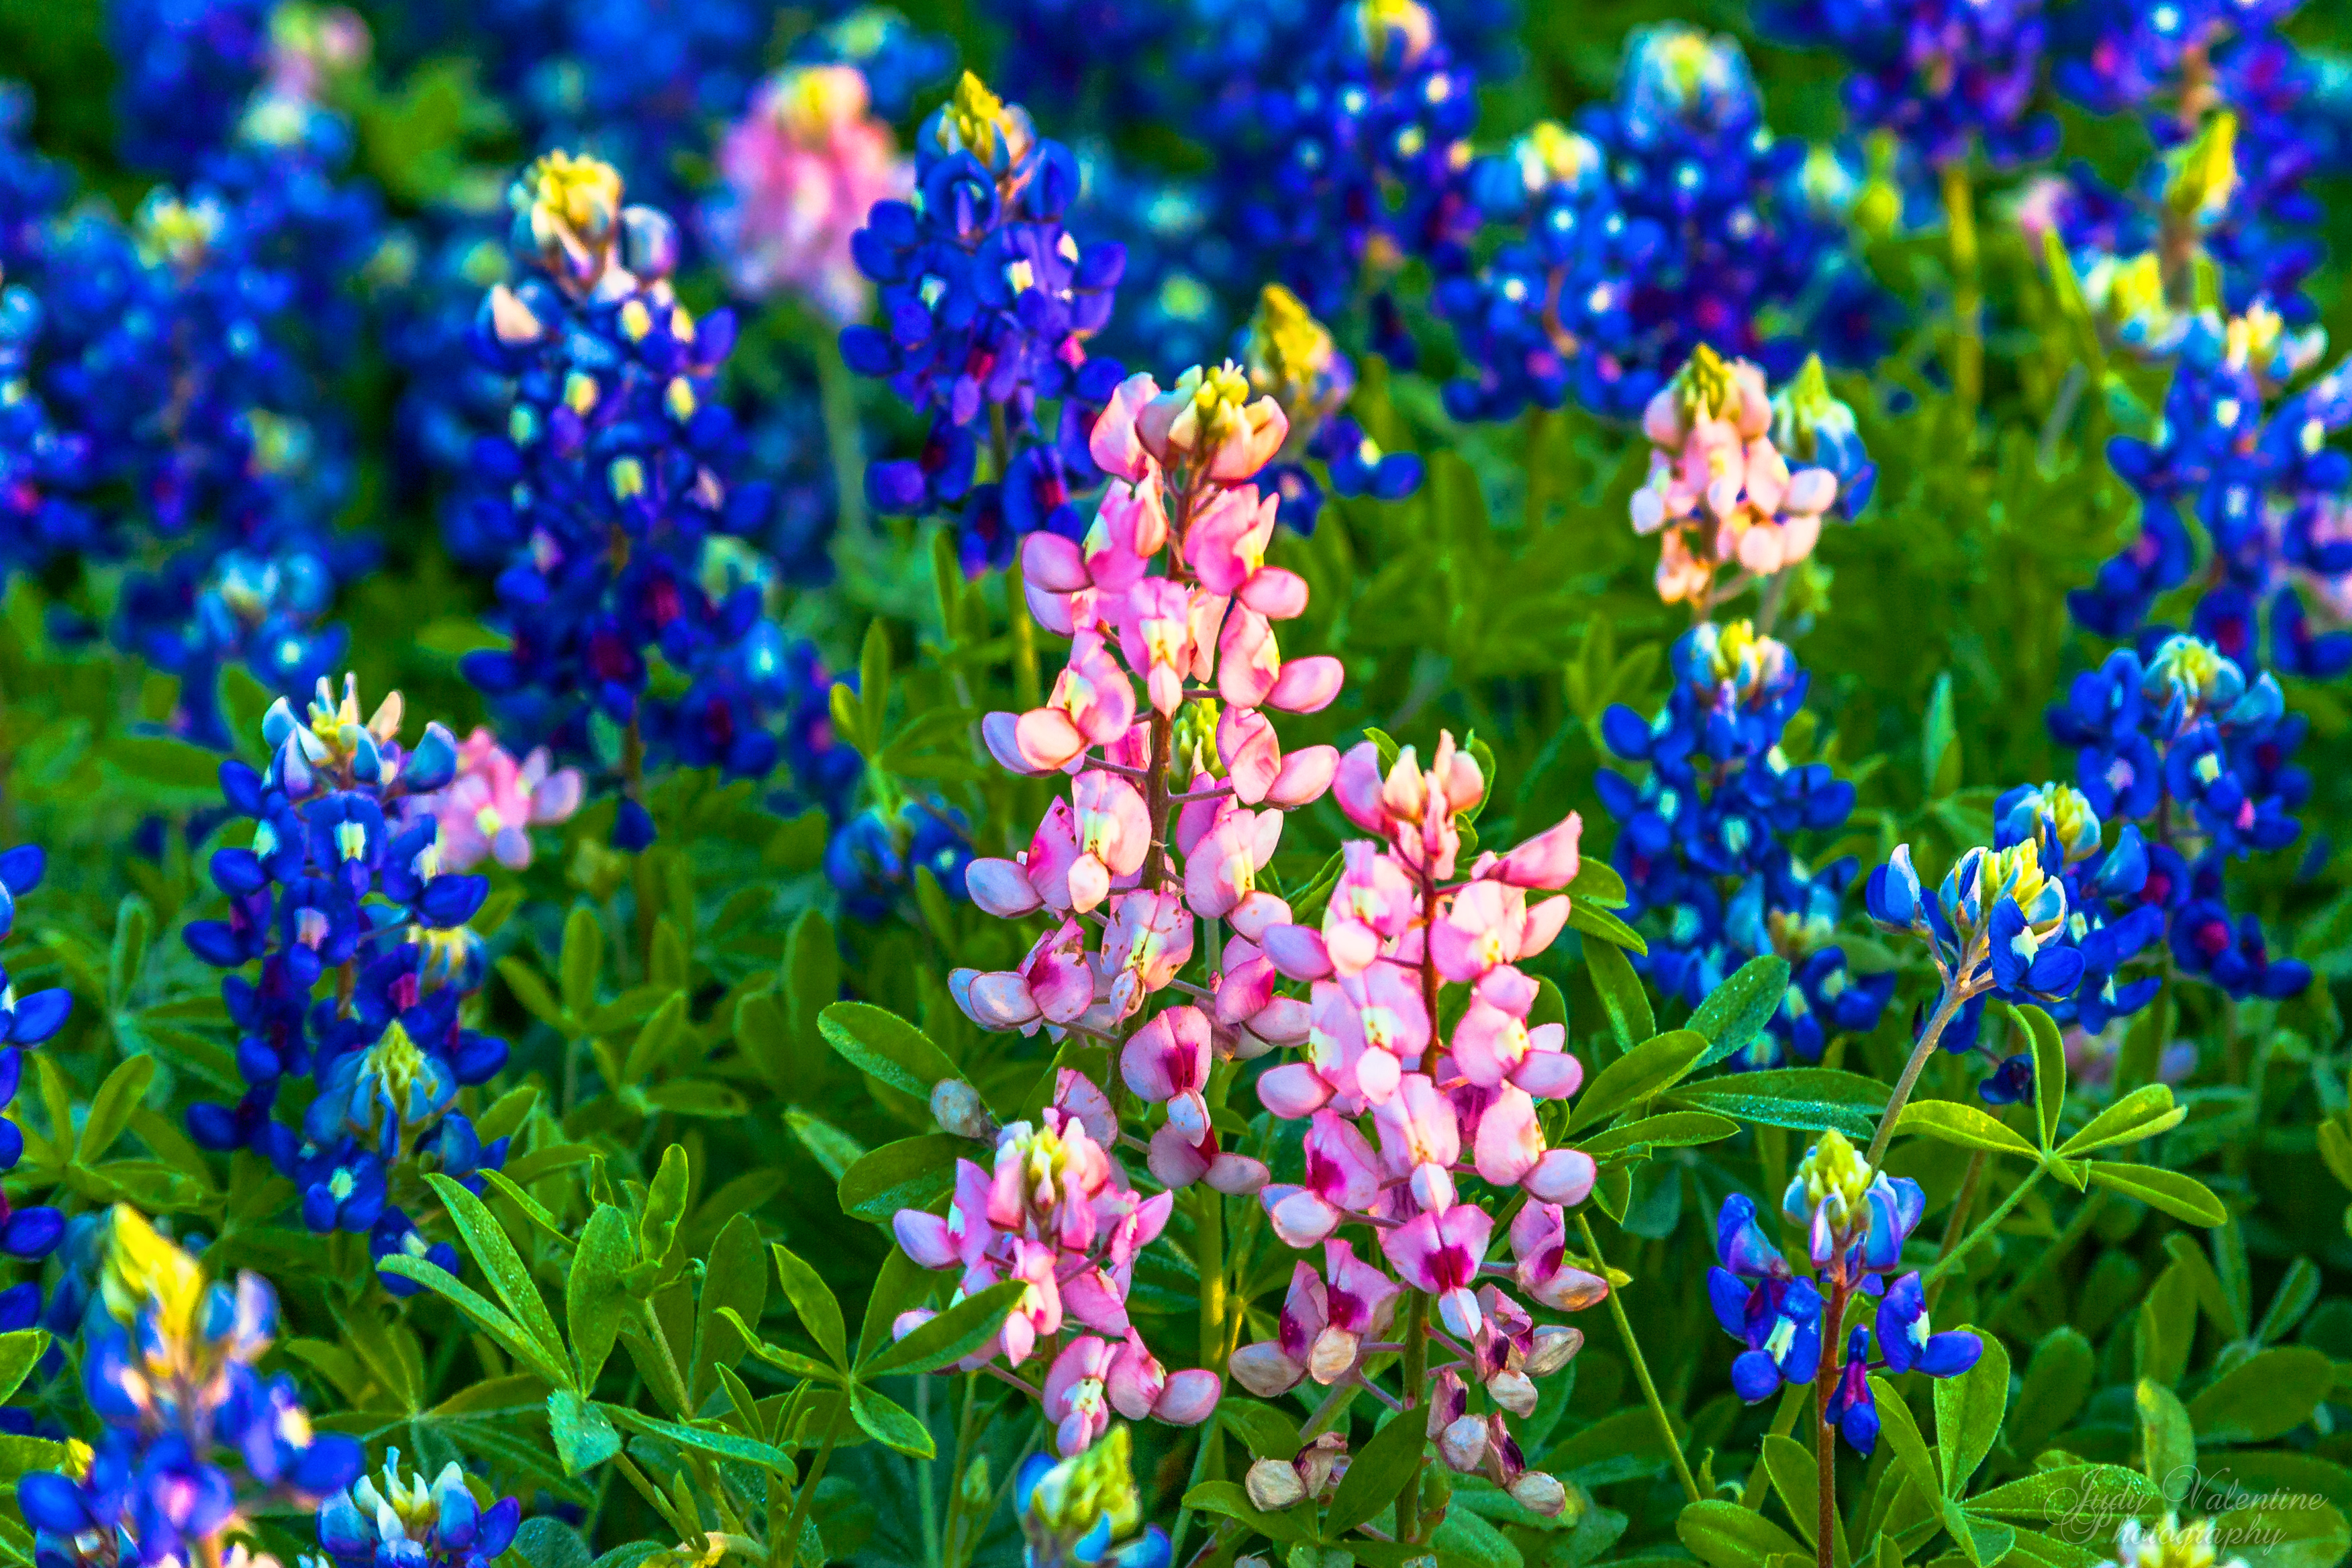 bluebonnet wallpaper wildflowers wallpapersafari